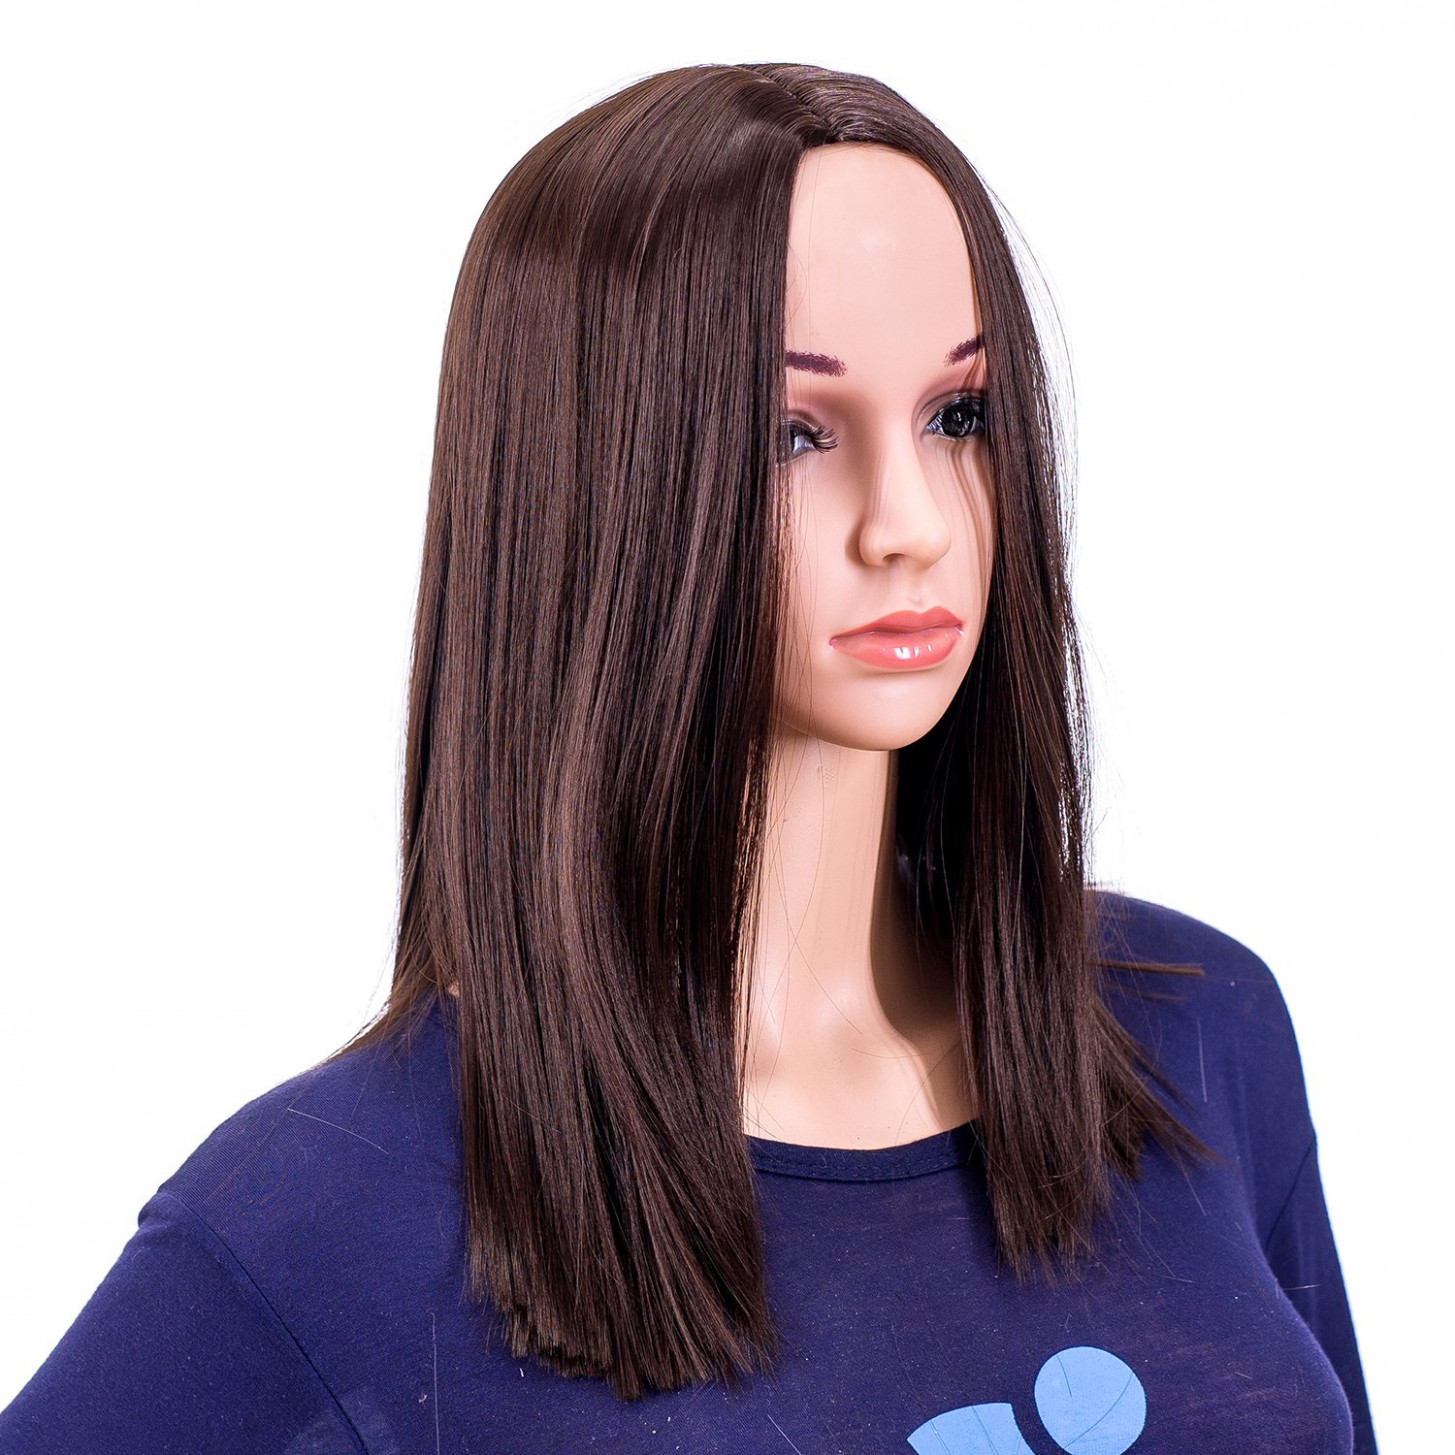 Swacc 12 inch short straight middle part hair wig medium length synthetic heat resistant wigs for women with wig cap (dark brown 12#) brown medium hair